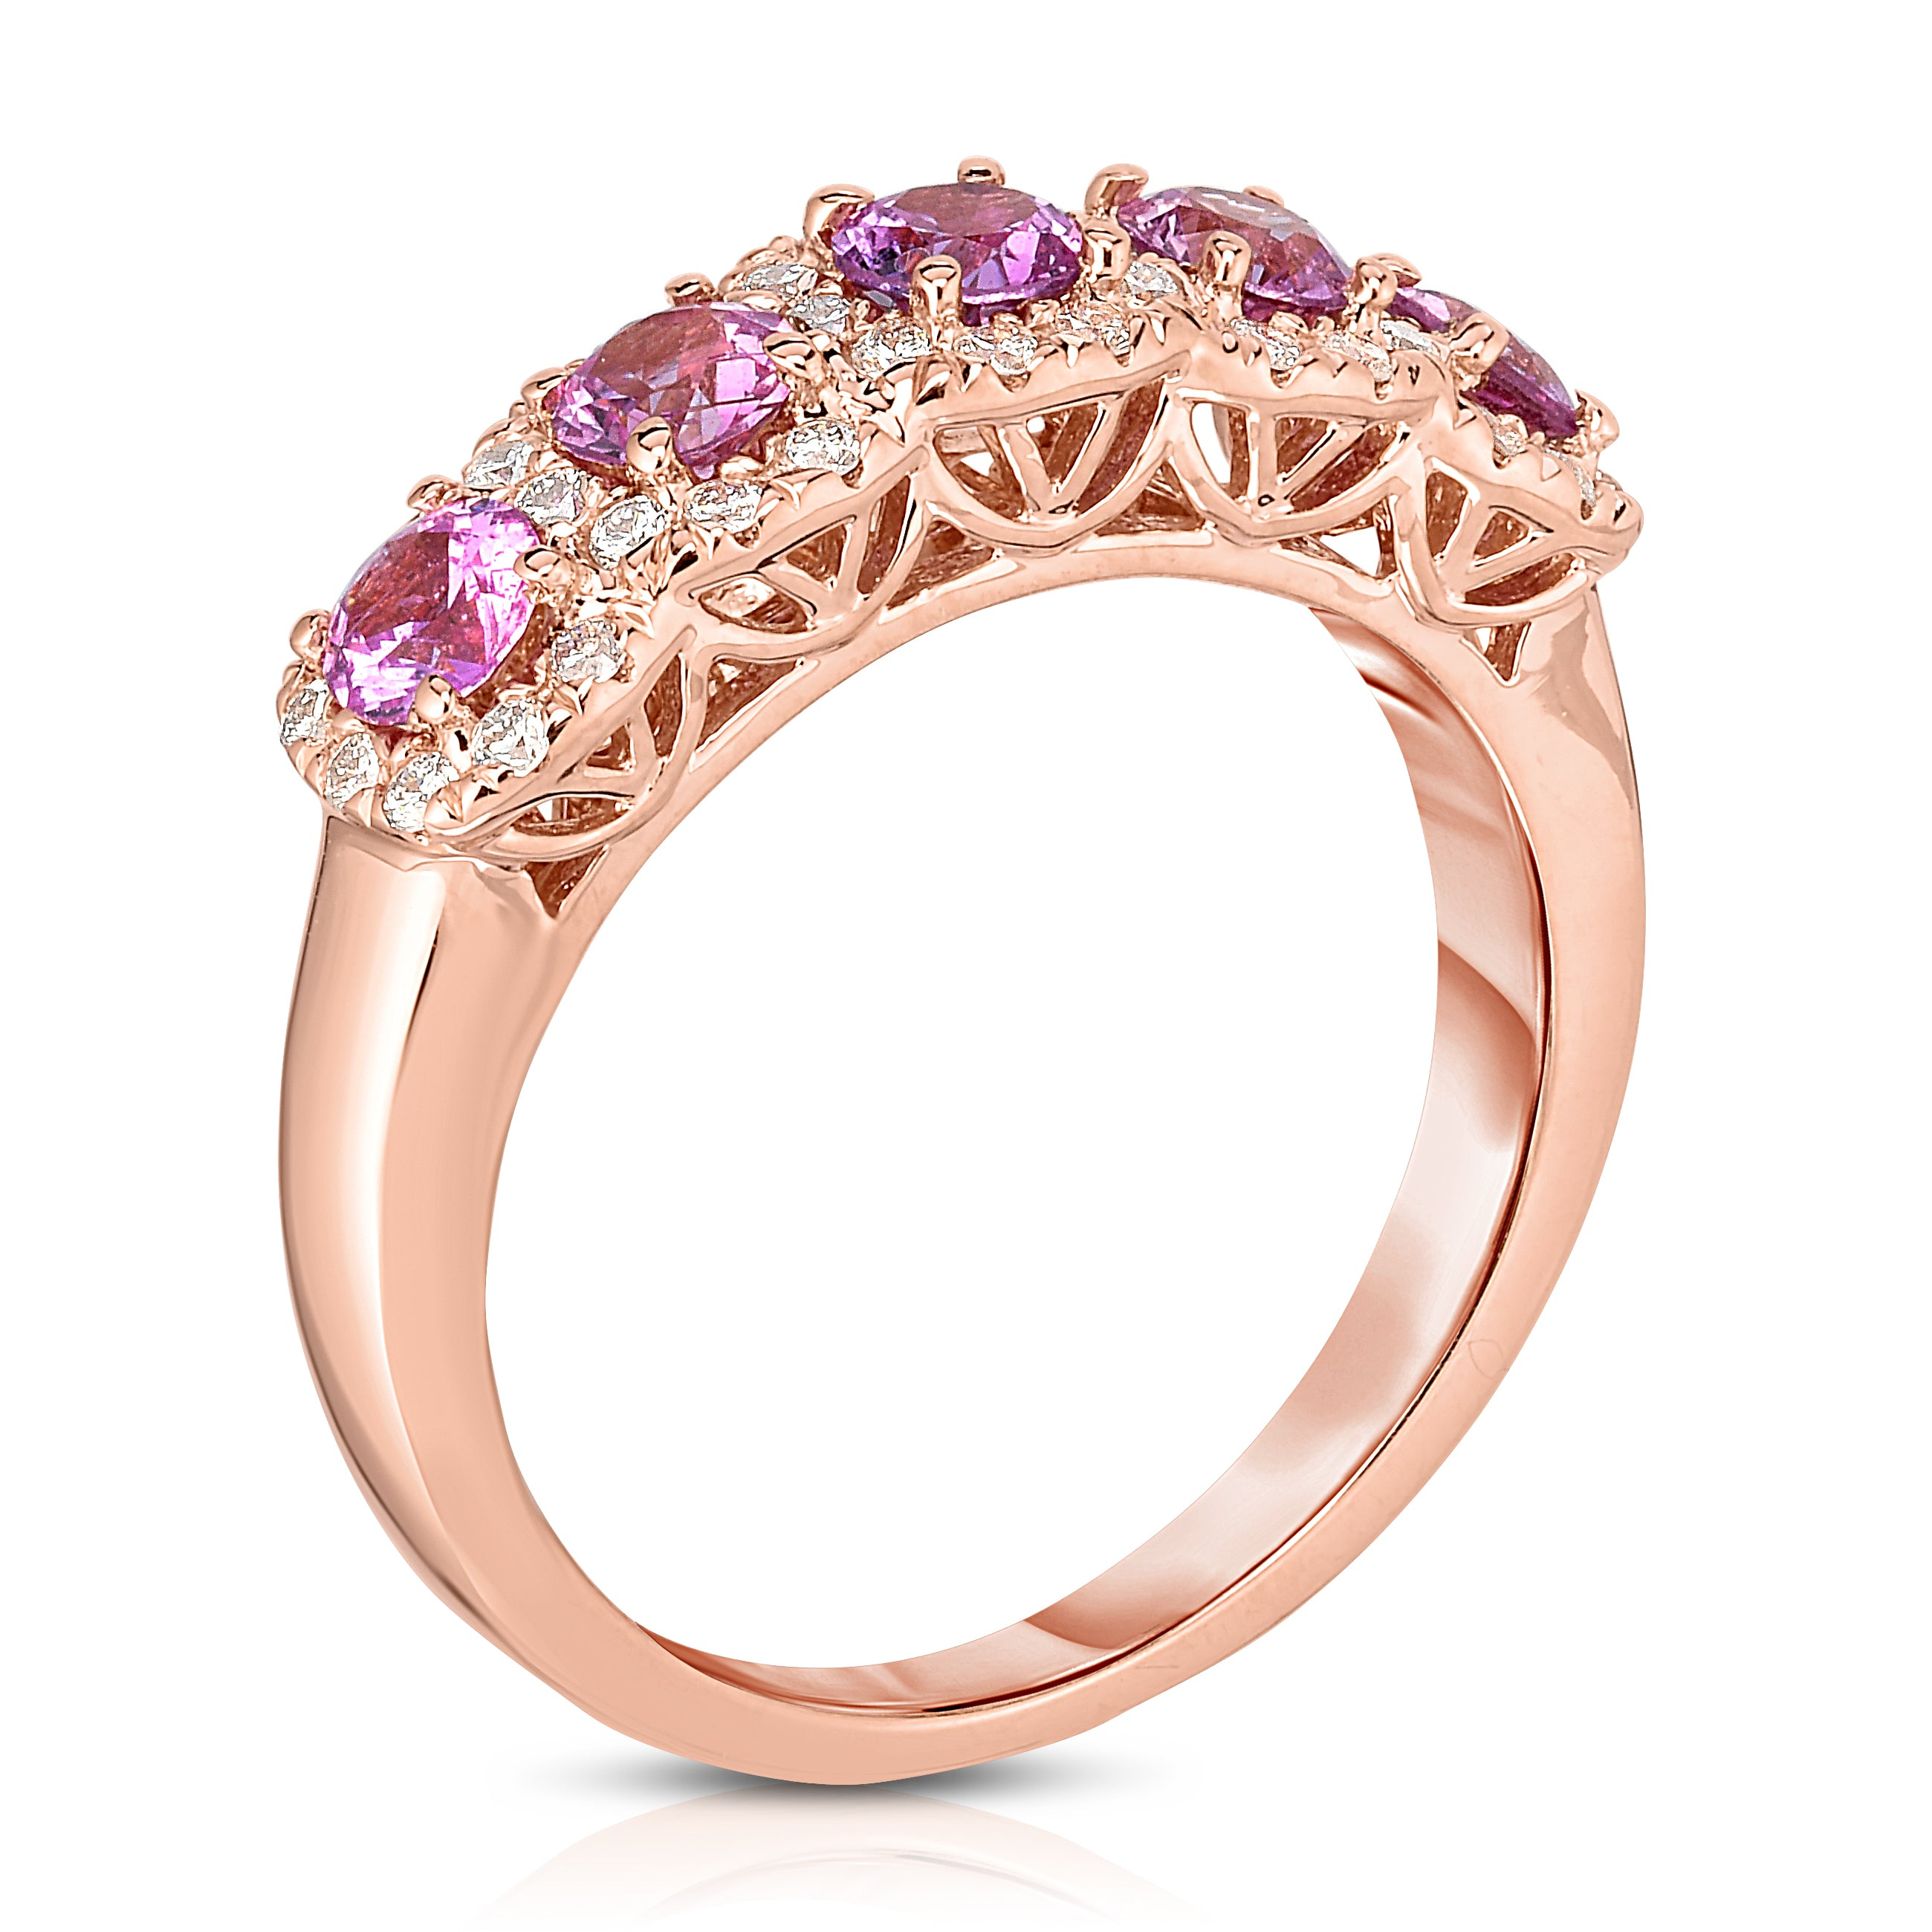 sapphire stone ring and engagement products costagli diamond gold rose rings pink paolo buy an